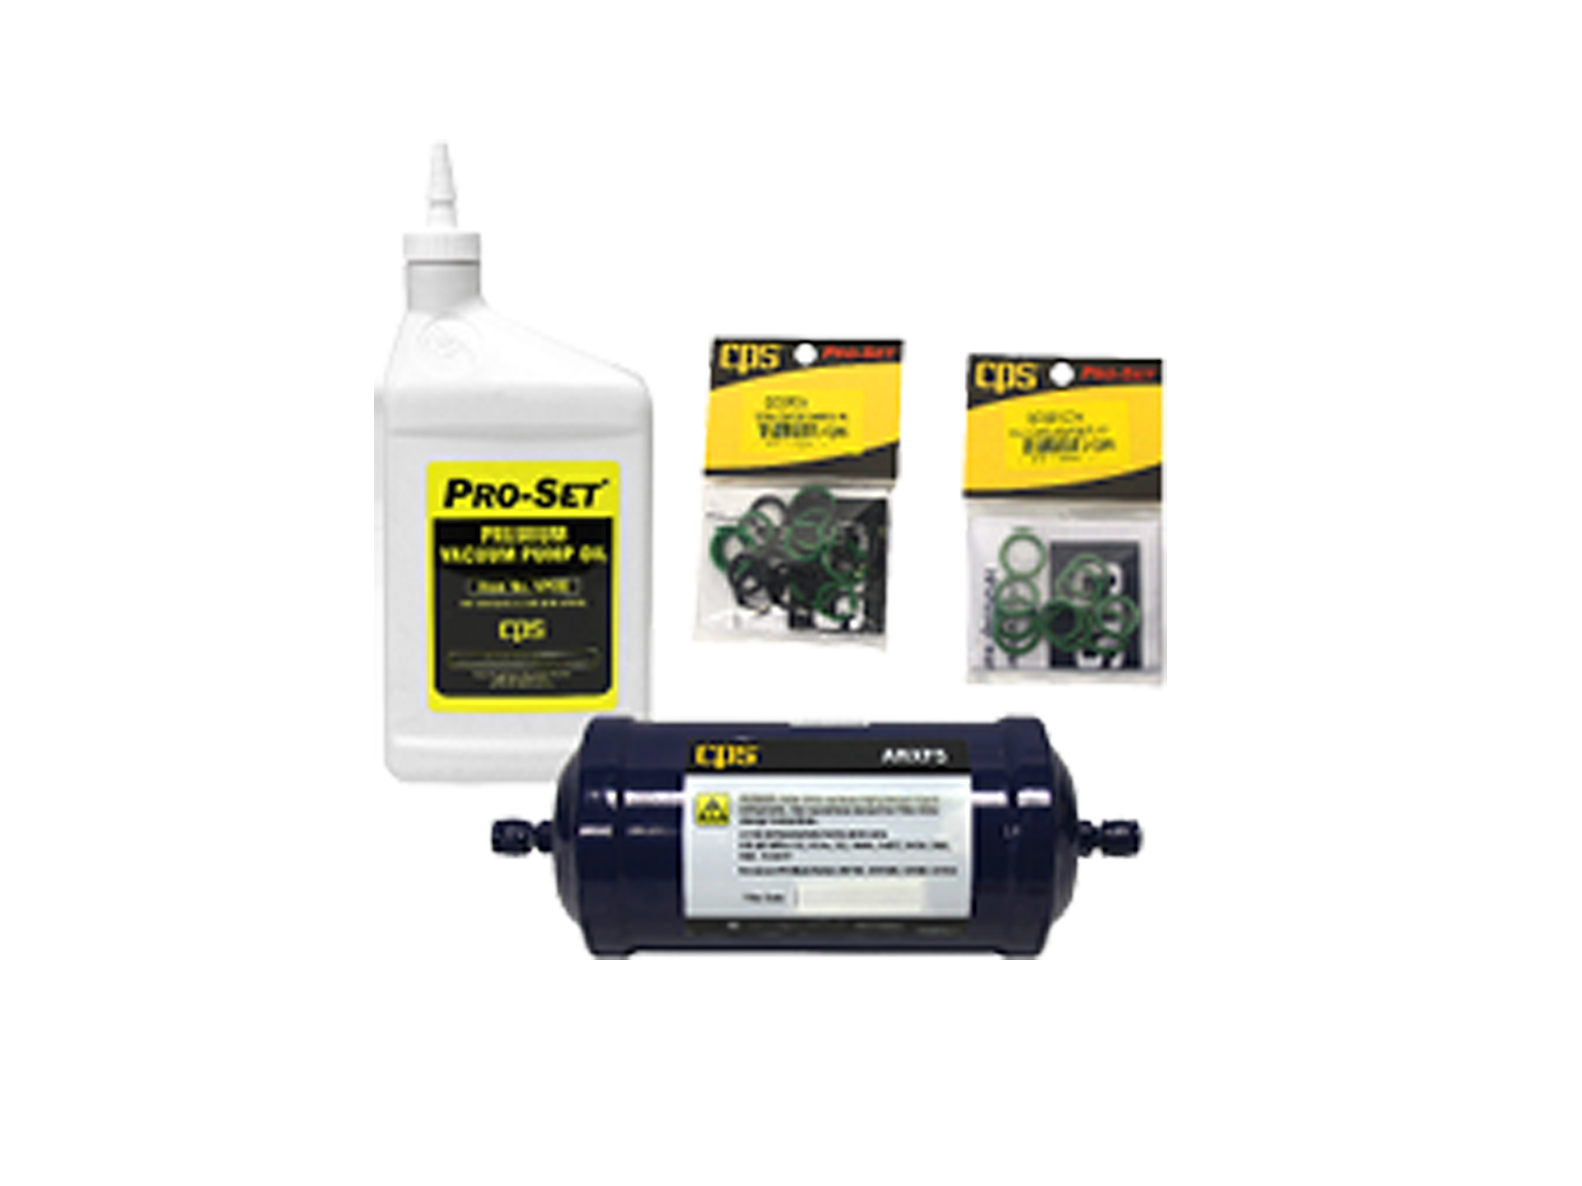 Fx134a Refrigerant Management System Cps Products Inc Wire Harness Amp Cable Technician Fx3030x1 Fx Series Maintenance Kit